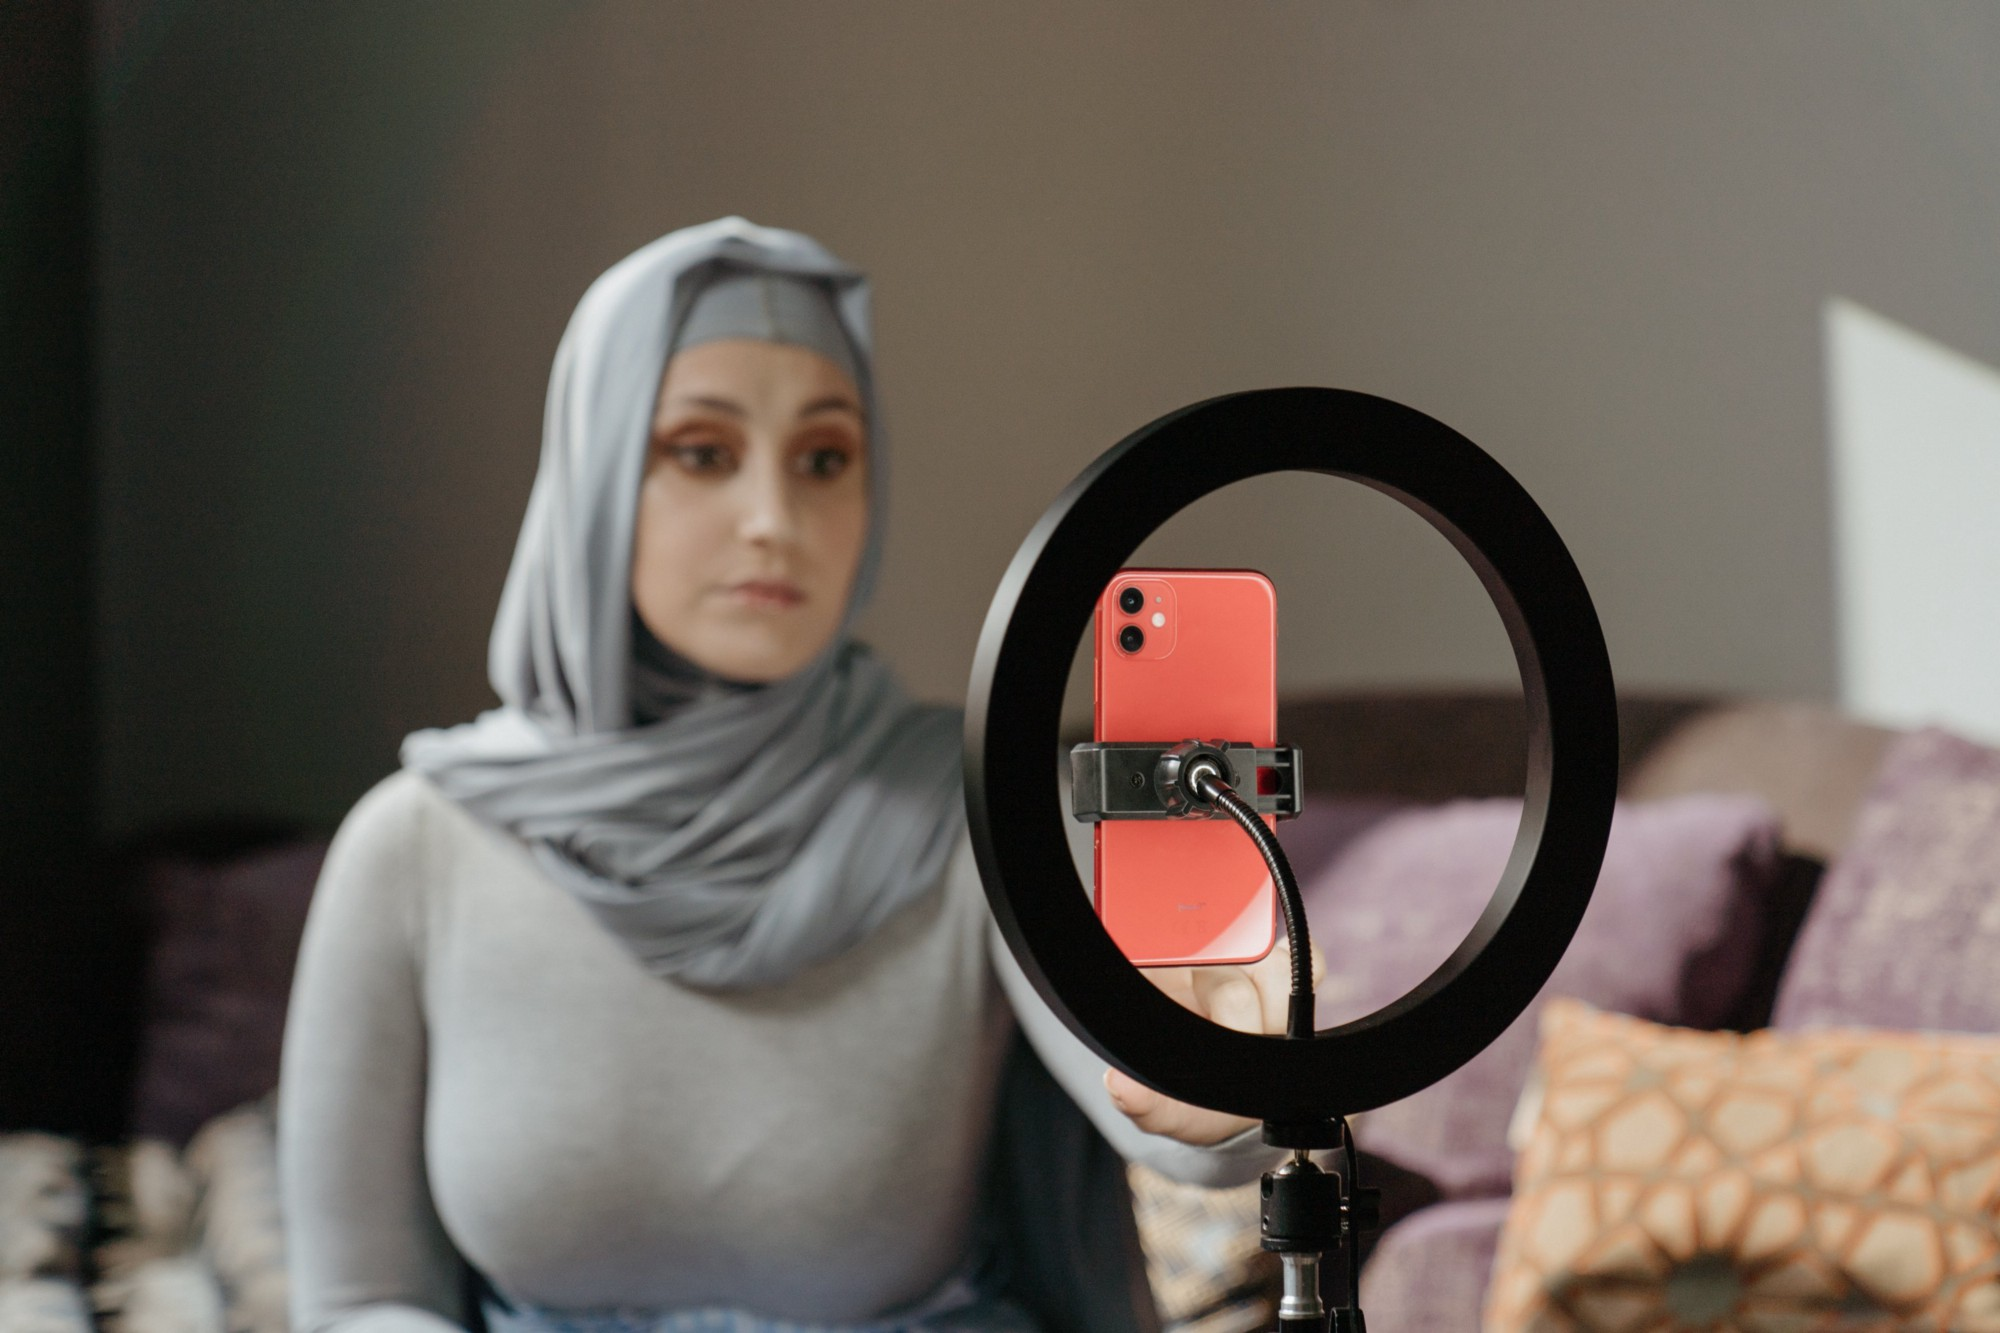 A woman in a grey blouse and grey hijab sitting in front of a ring light holding a coral-colored mobile phone.